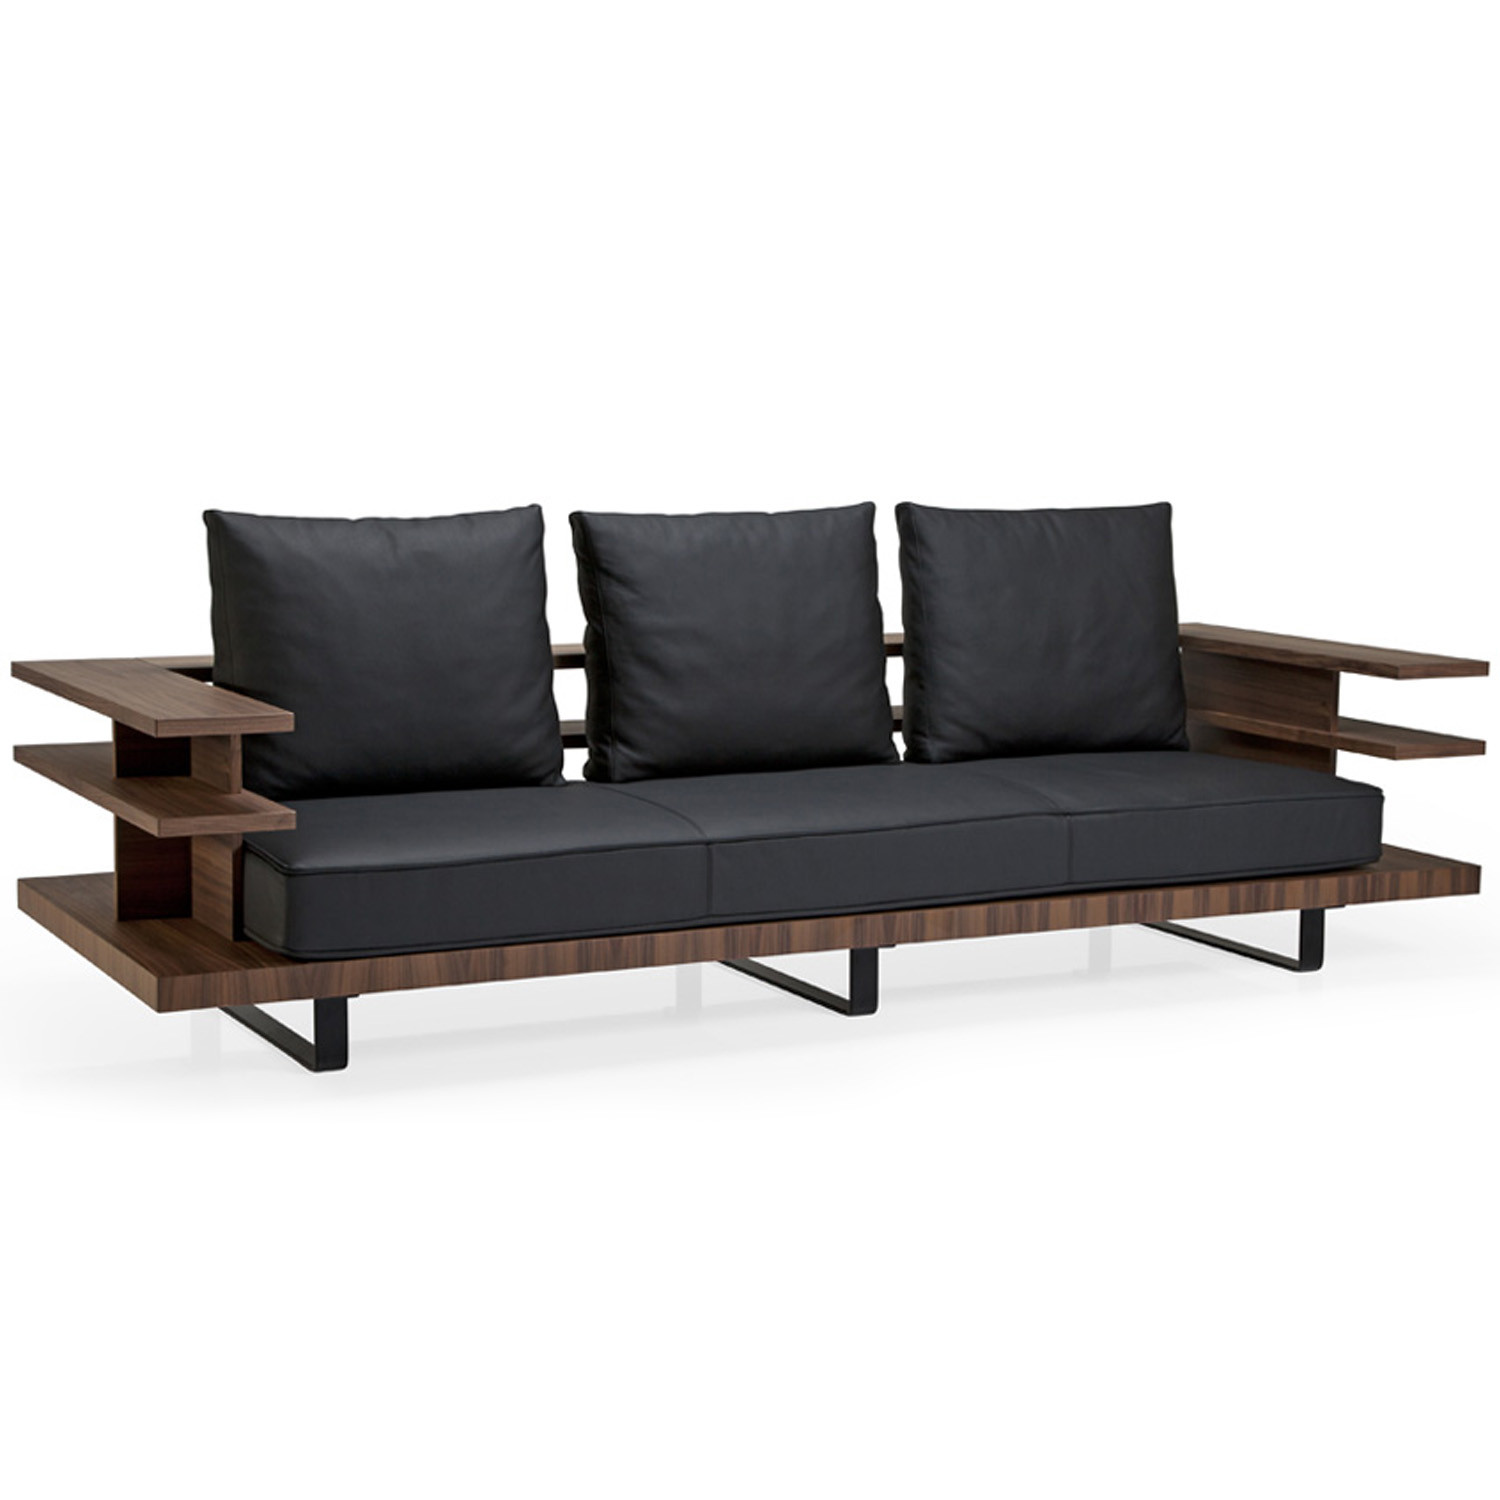 Gazel Three Seater Sofa by Koleksiyion